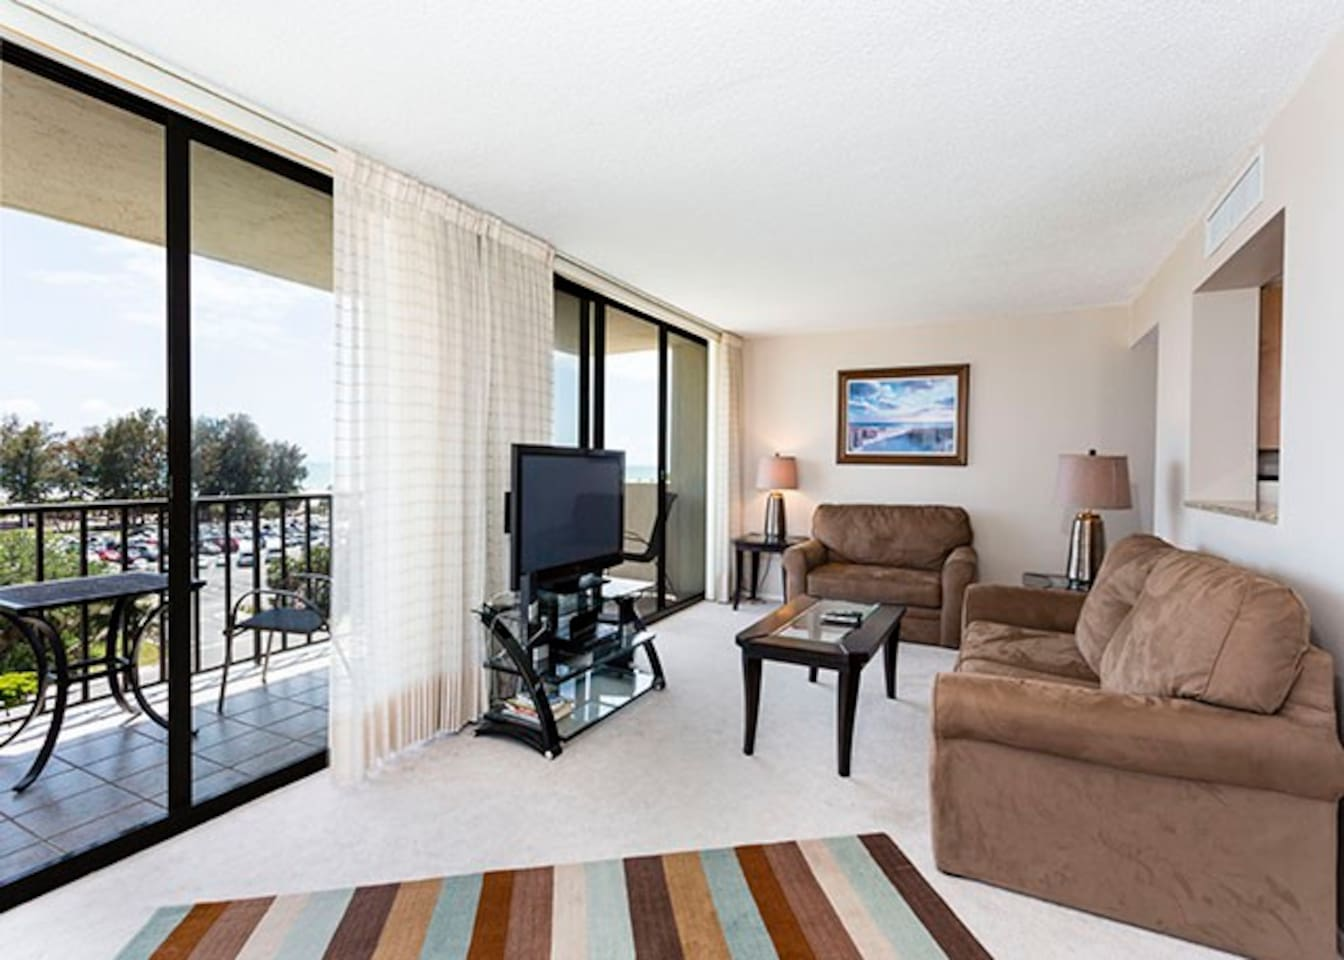 You'll never want to leave the cozy, plush couches! Recently refurnished, the spacious living room was designed with comfort, style, and relaxation in mind. The room is very light and airy because of the ceiling to floor windows leading to the balcony!